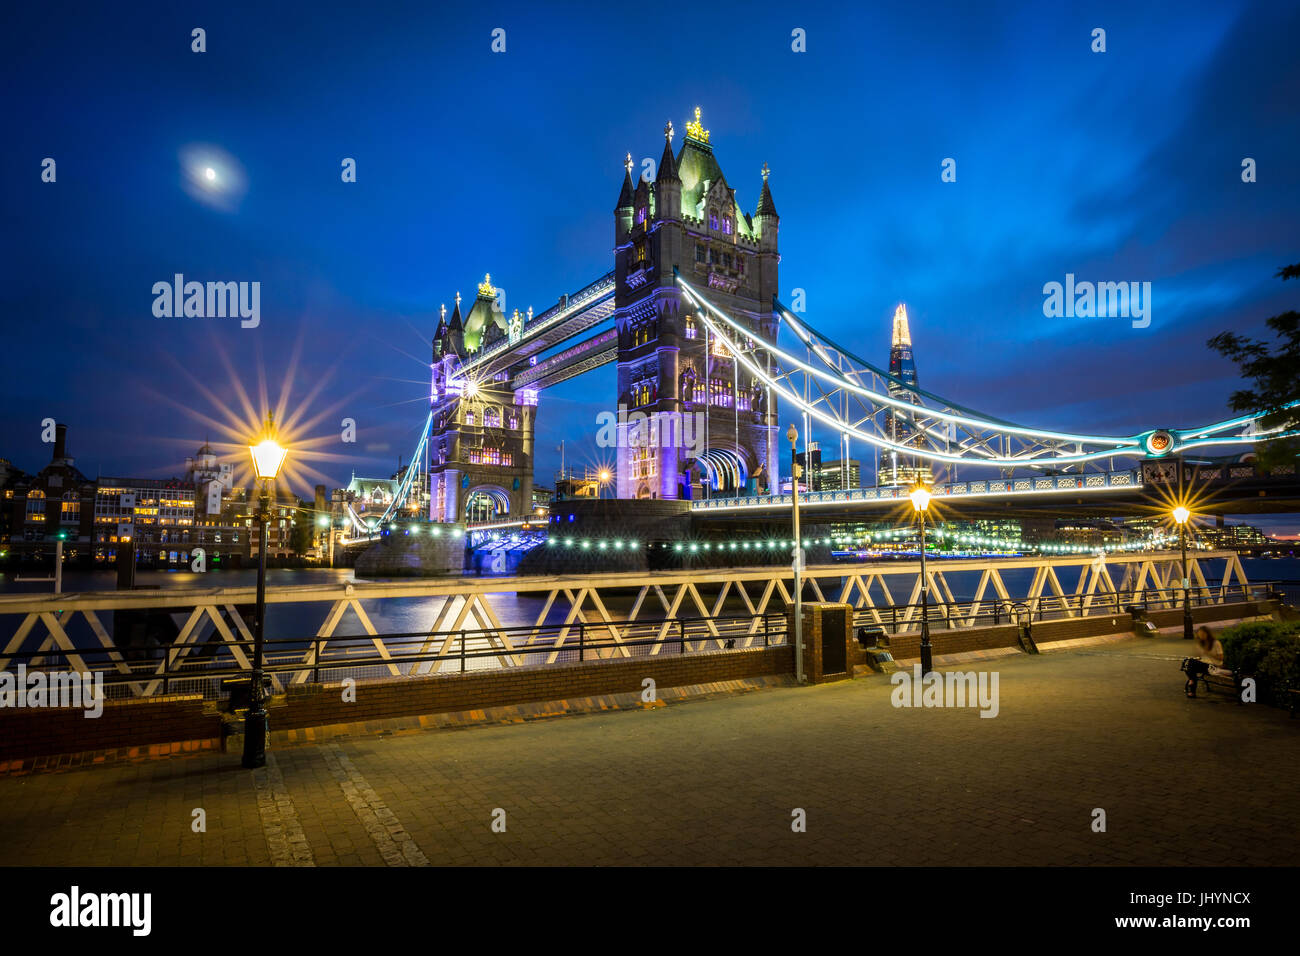 A moonlit evening in London with a view of Tower Bridge and the Shard behind, London, England, United Kingdom, Europe - Stock Image